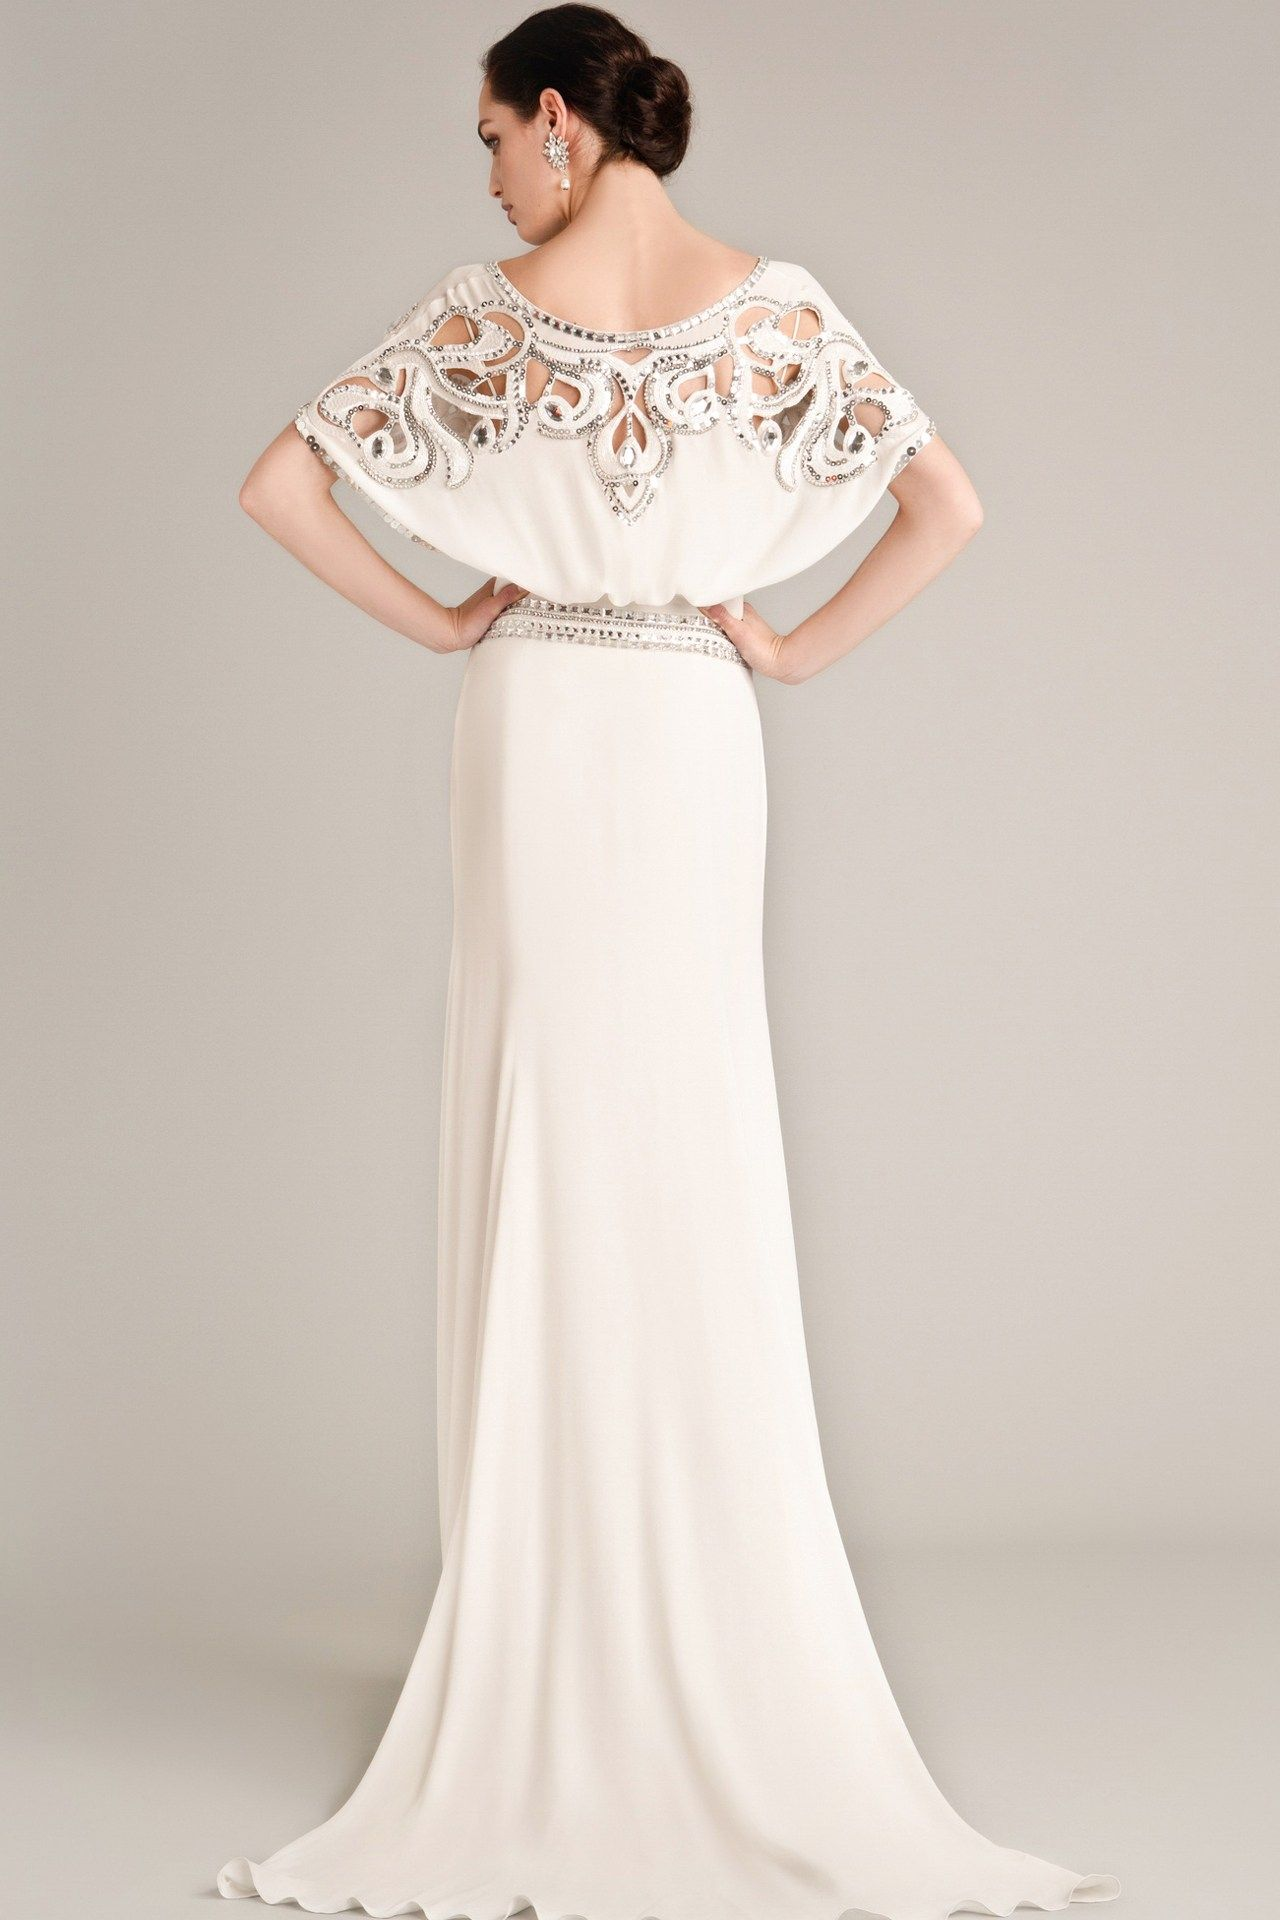 Temperley London Bridal - Iris Spring/Summer 2015 Collection